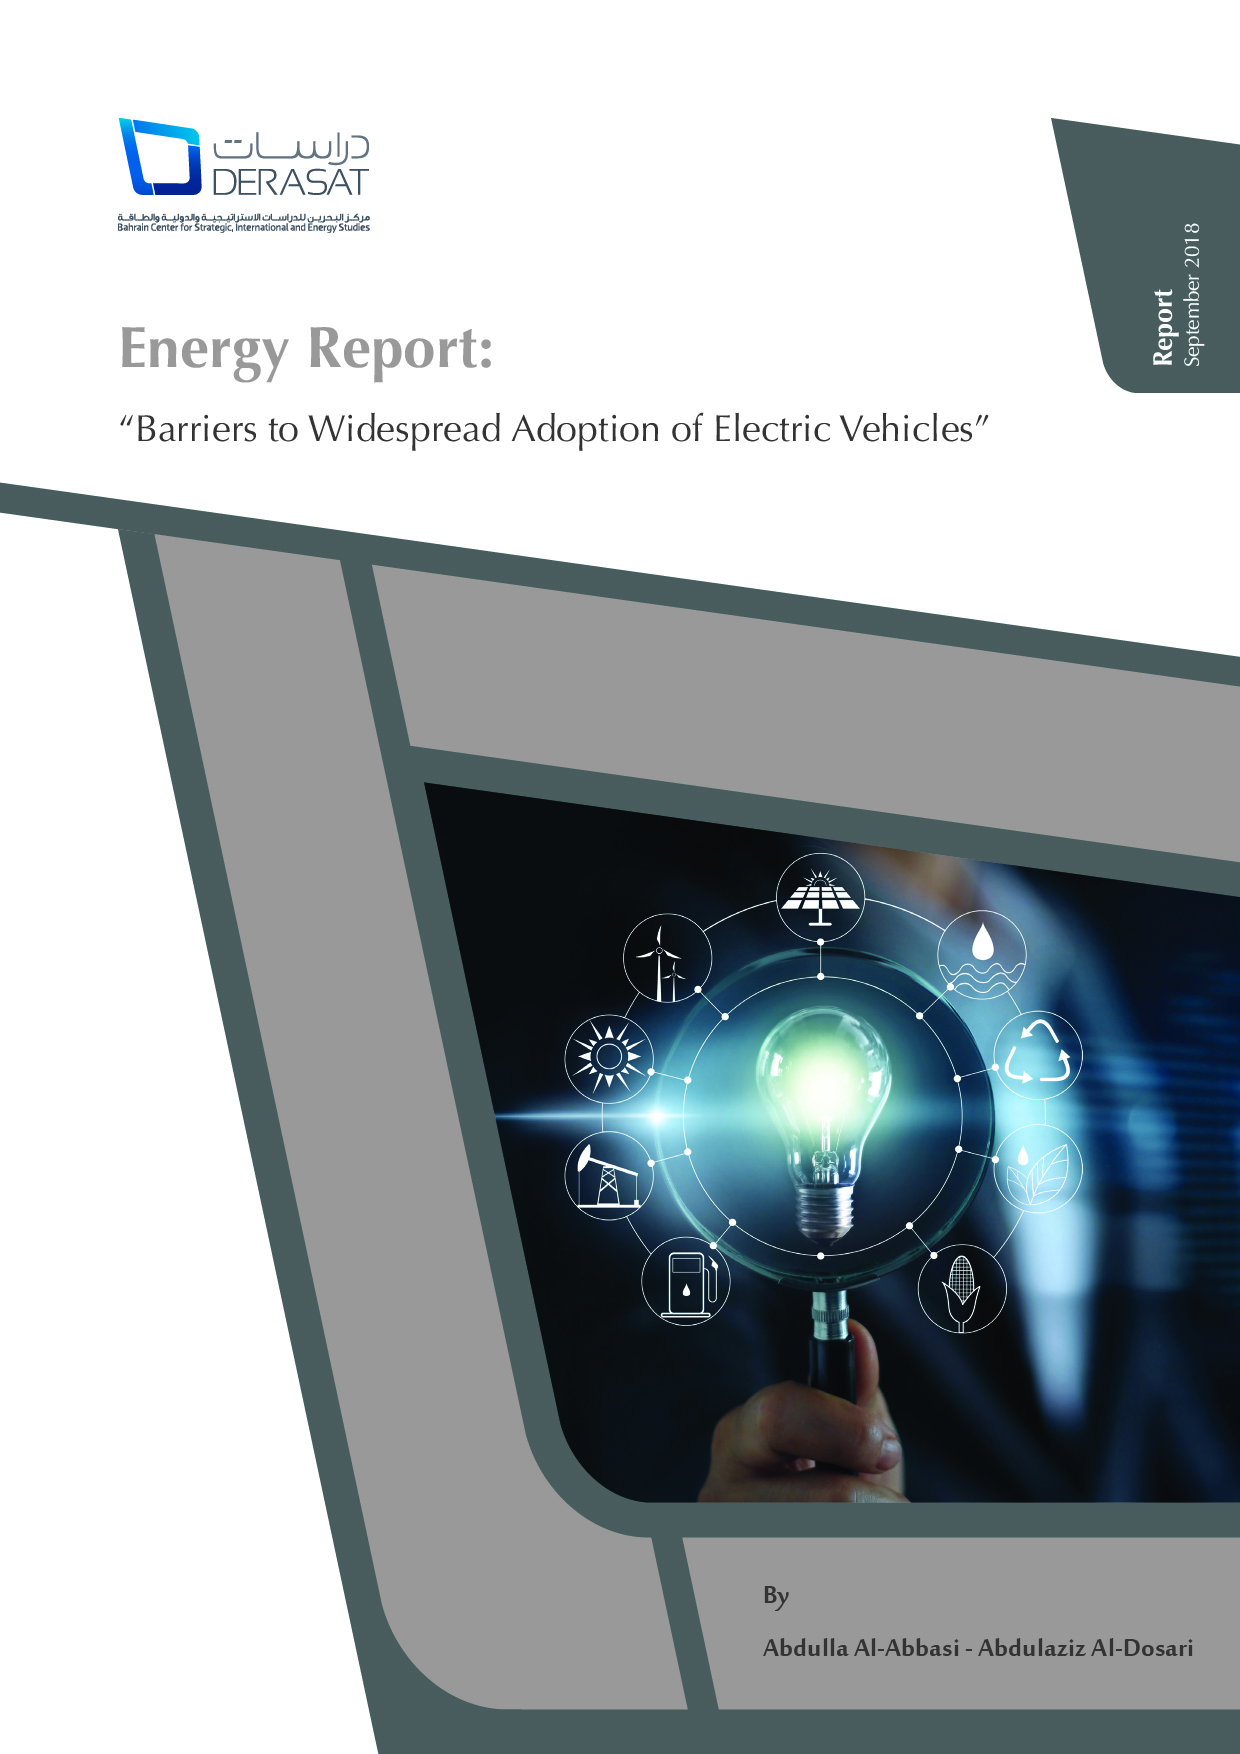 Barriers to Widespread Adoption of Electric Vehicles: Energy Report – 3/18